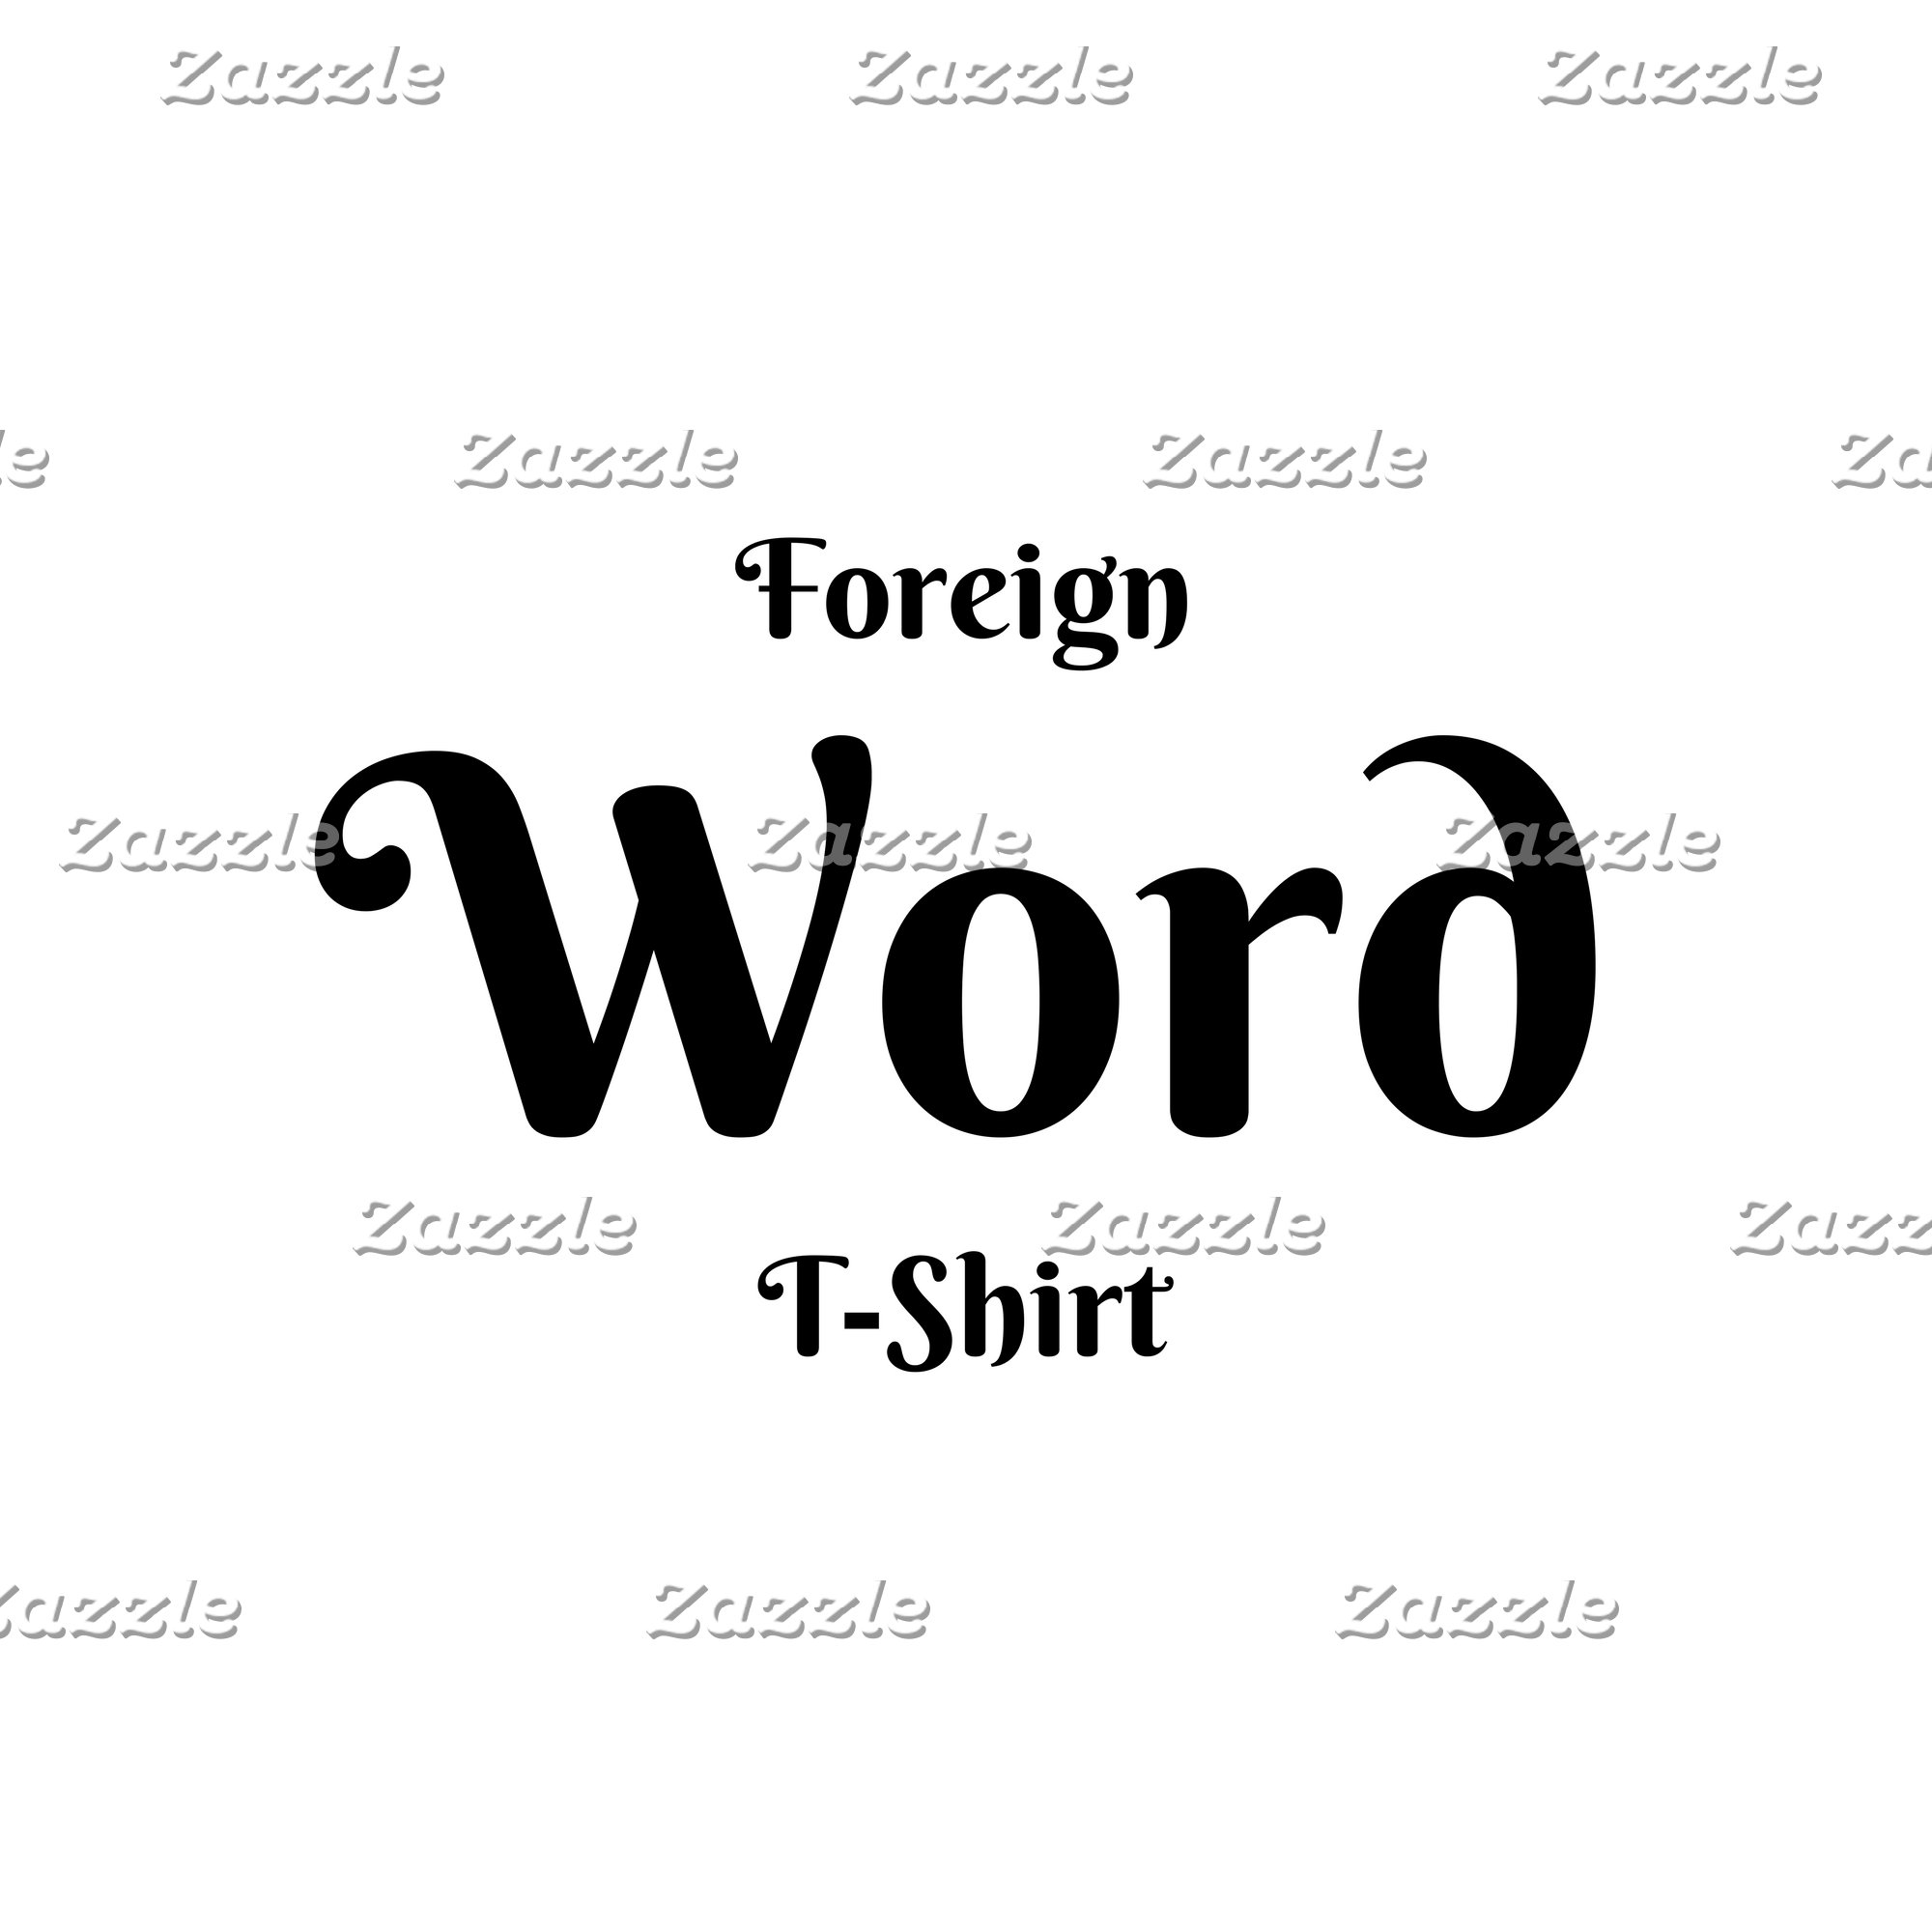 Foreign Word